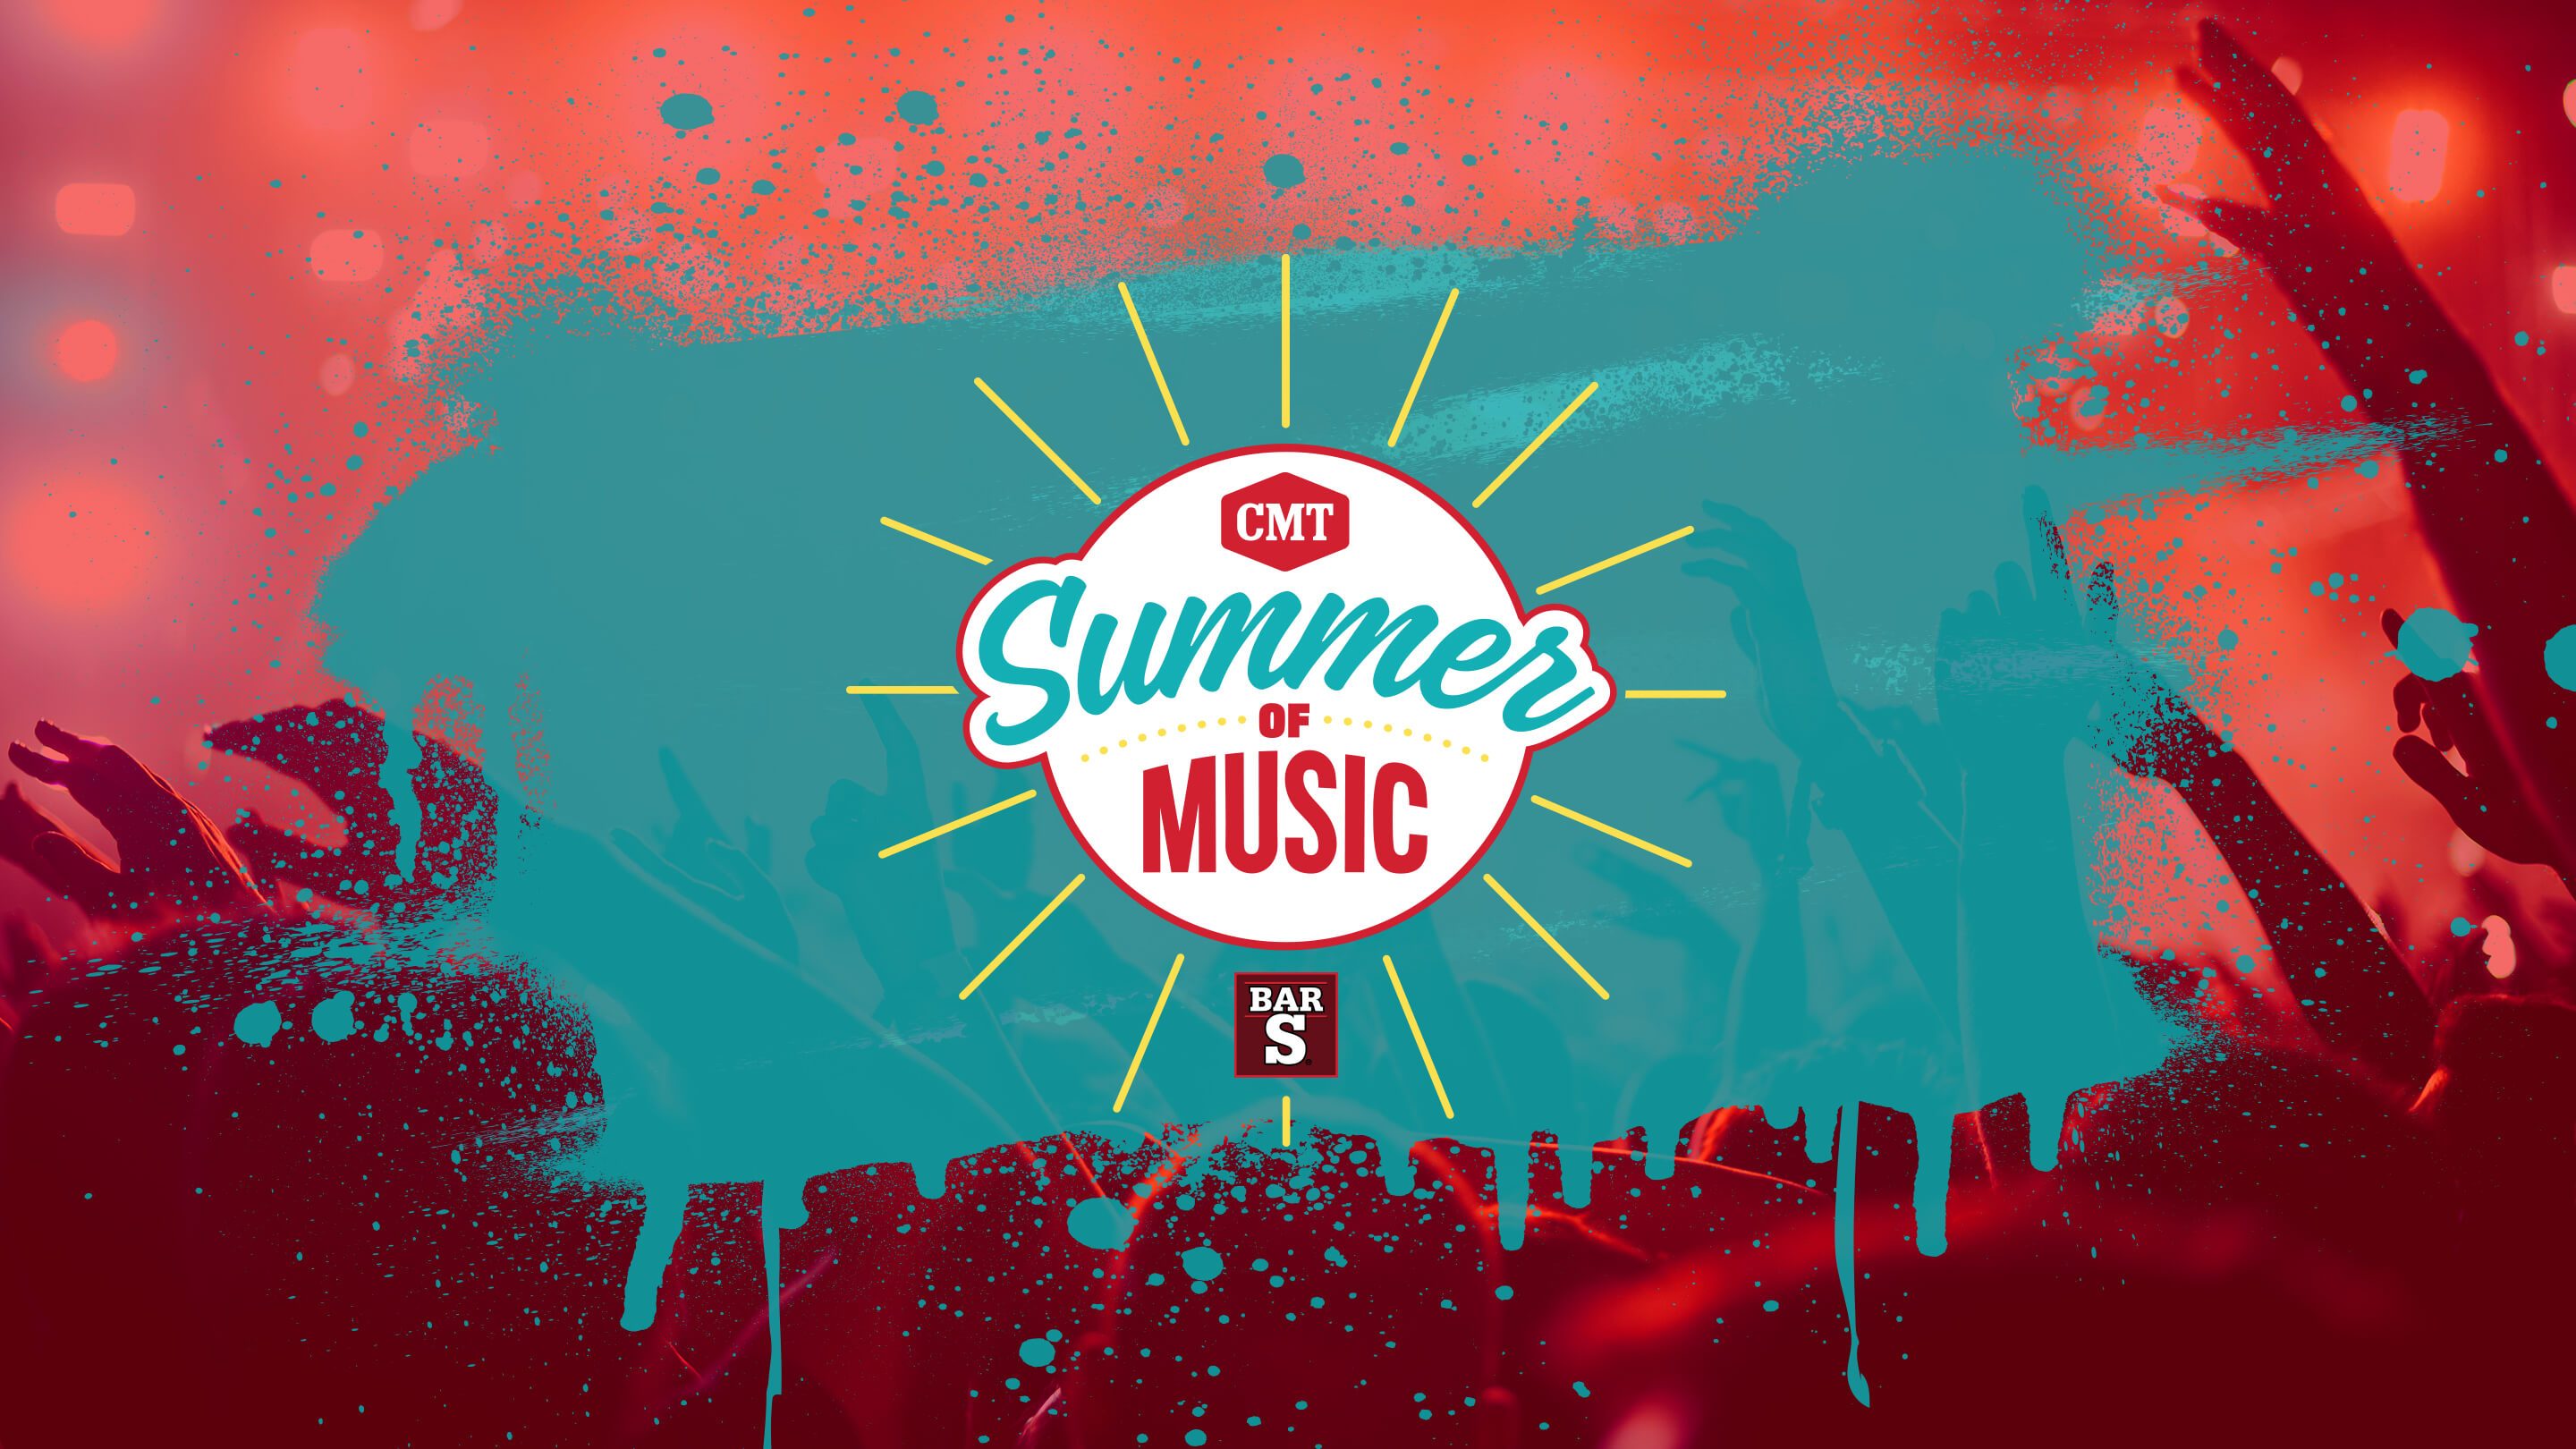 Enter The CMT Summer Of Music Sweepstakes | Bar-S Foods